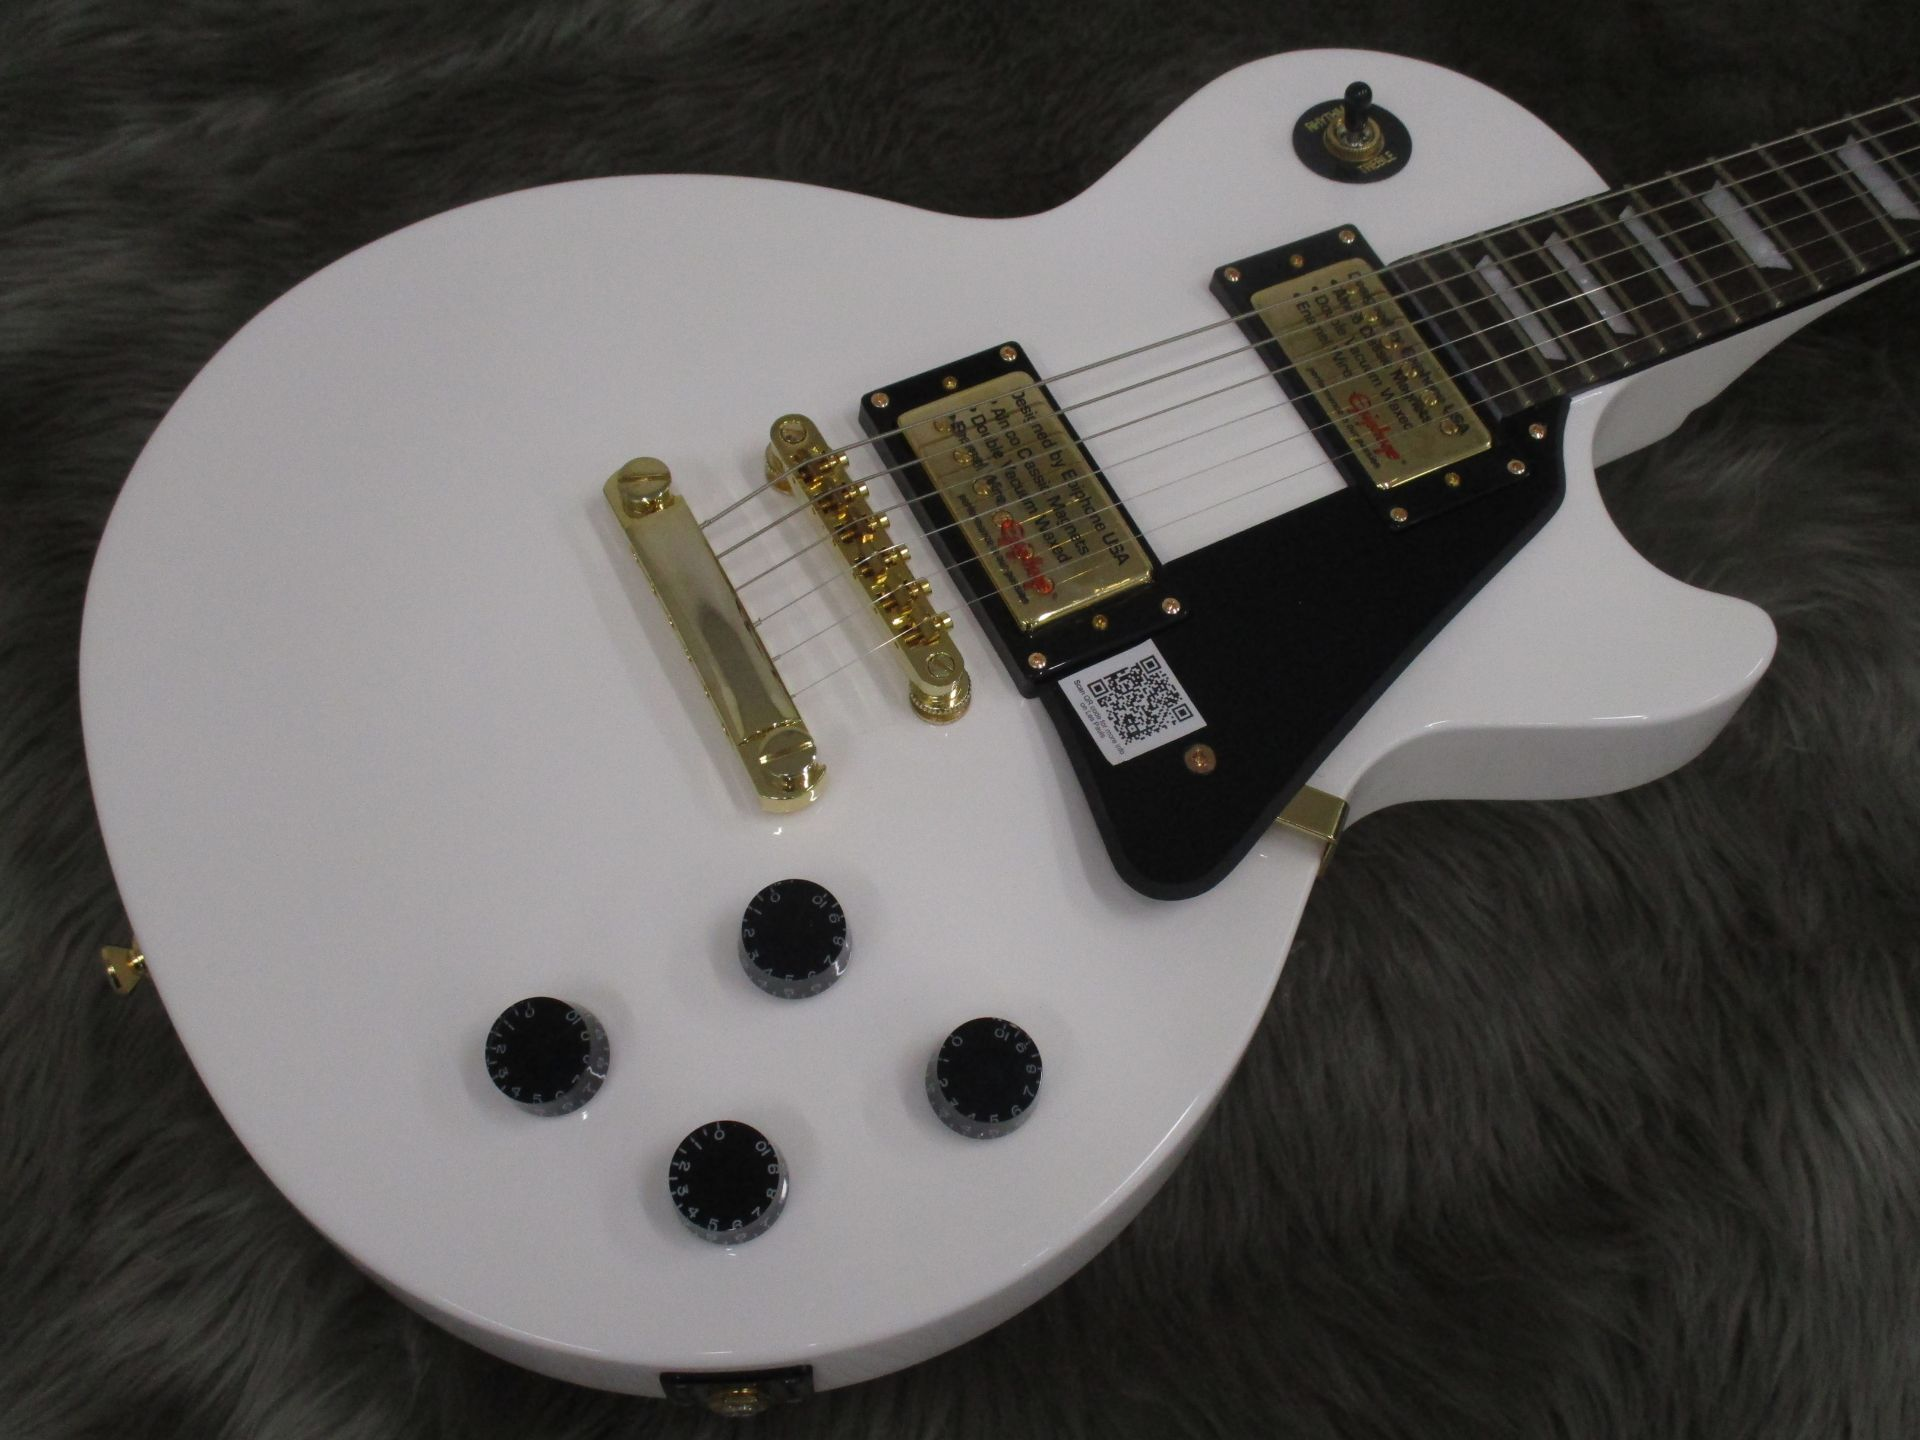 Limited Les Paul Studio Deluxe Alpine Whiteのボディトップ-アップ画像